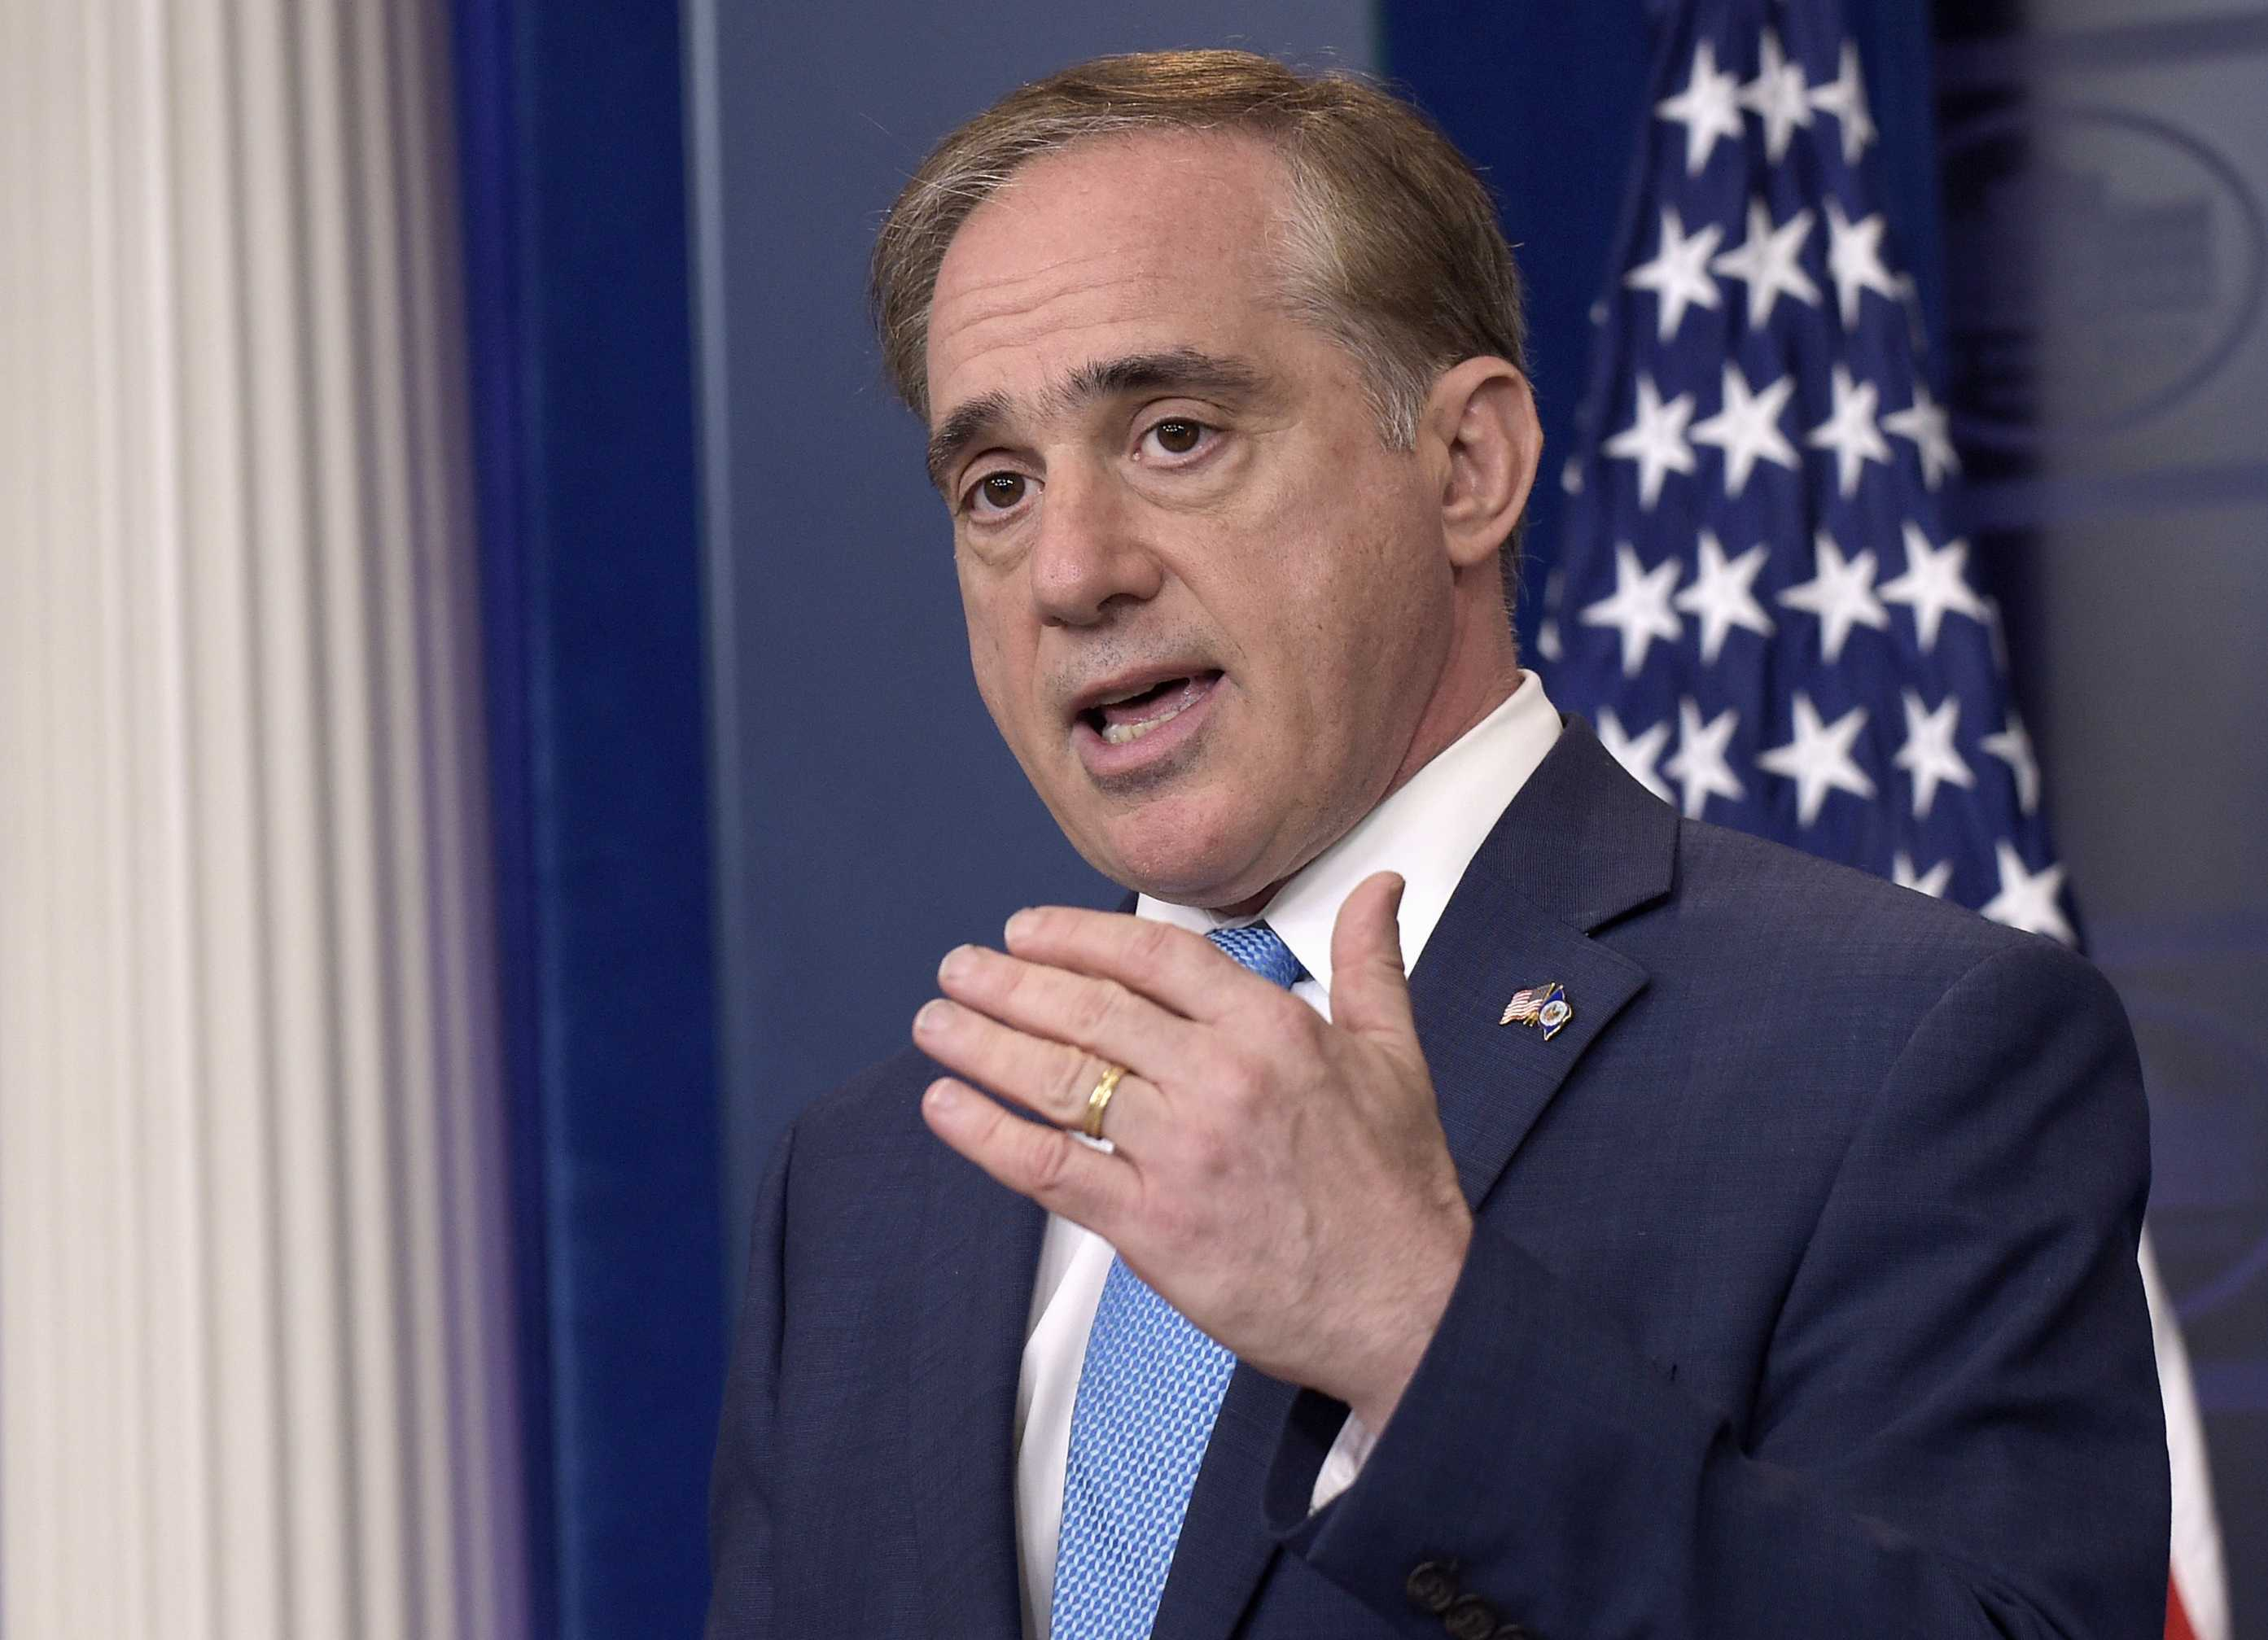 VA head changed records to hide travel boondoggle, report alleges